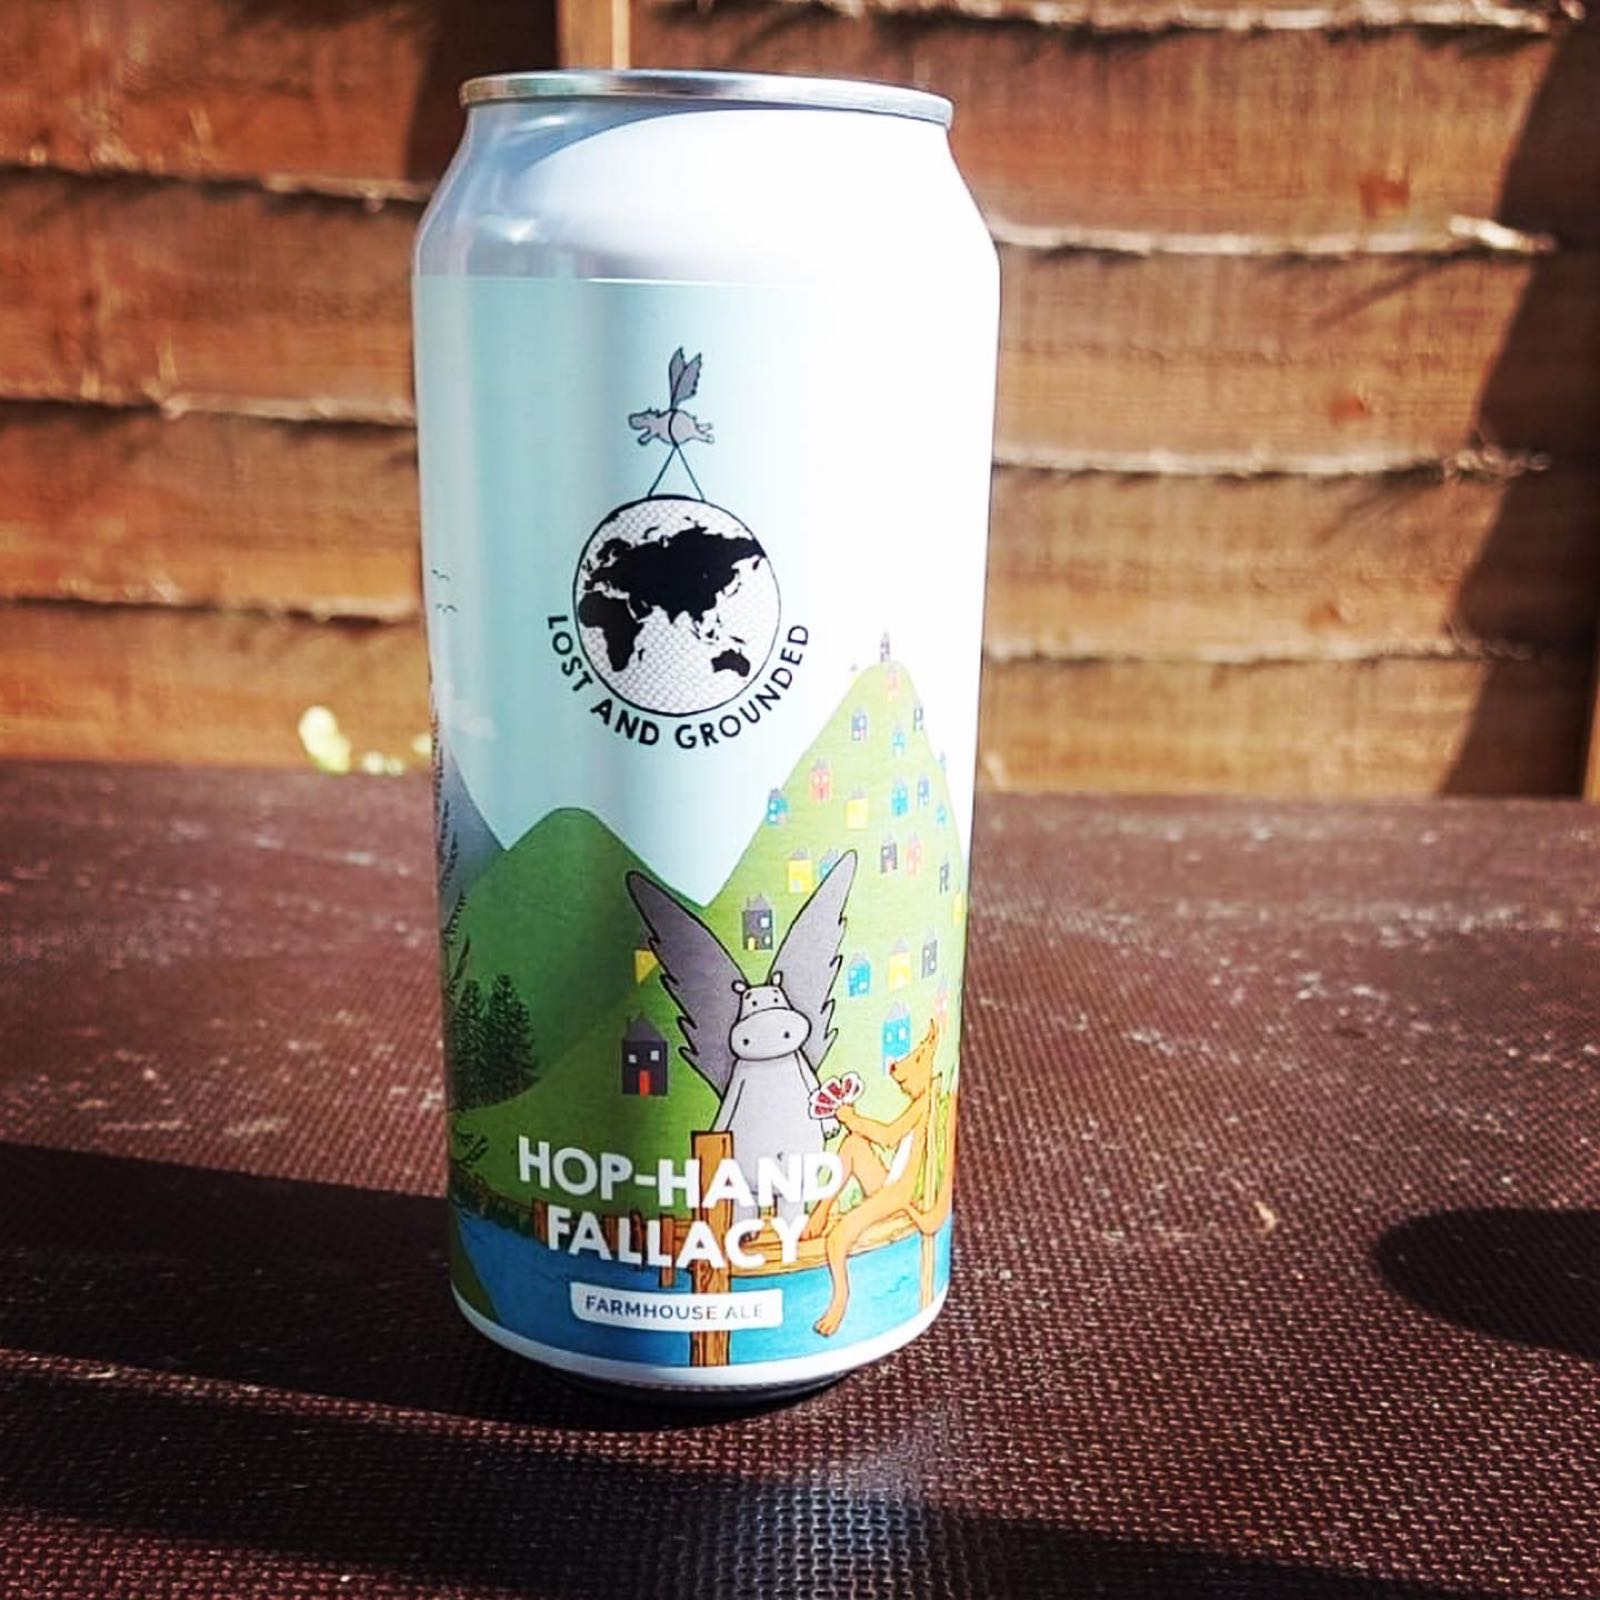 Lost & Grounded Hop Hand Fallacy Farmhouse Ale 4.4%